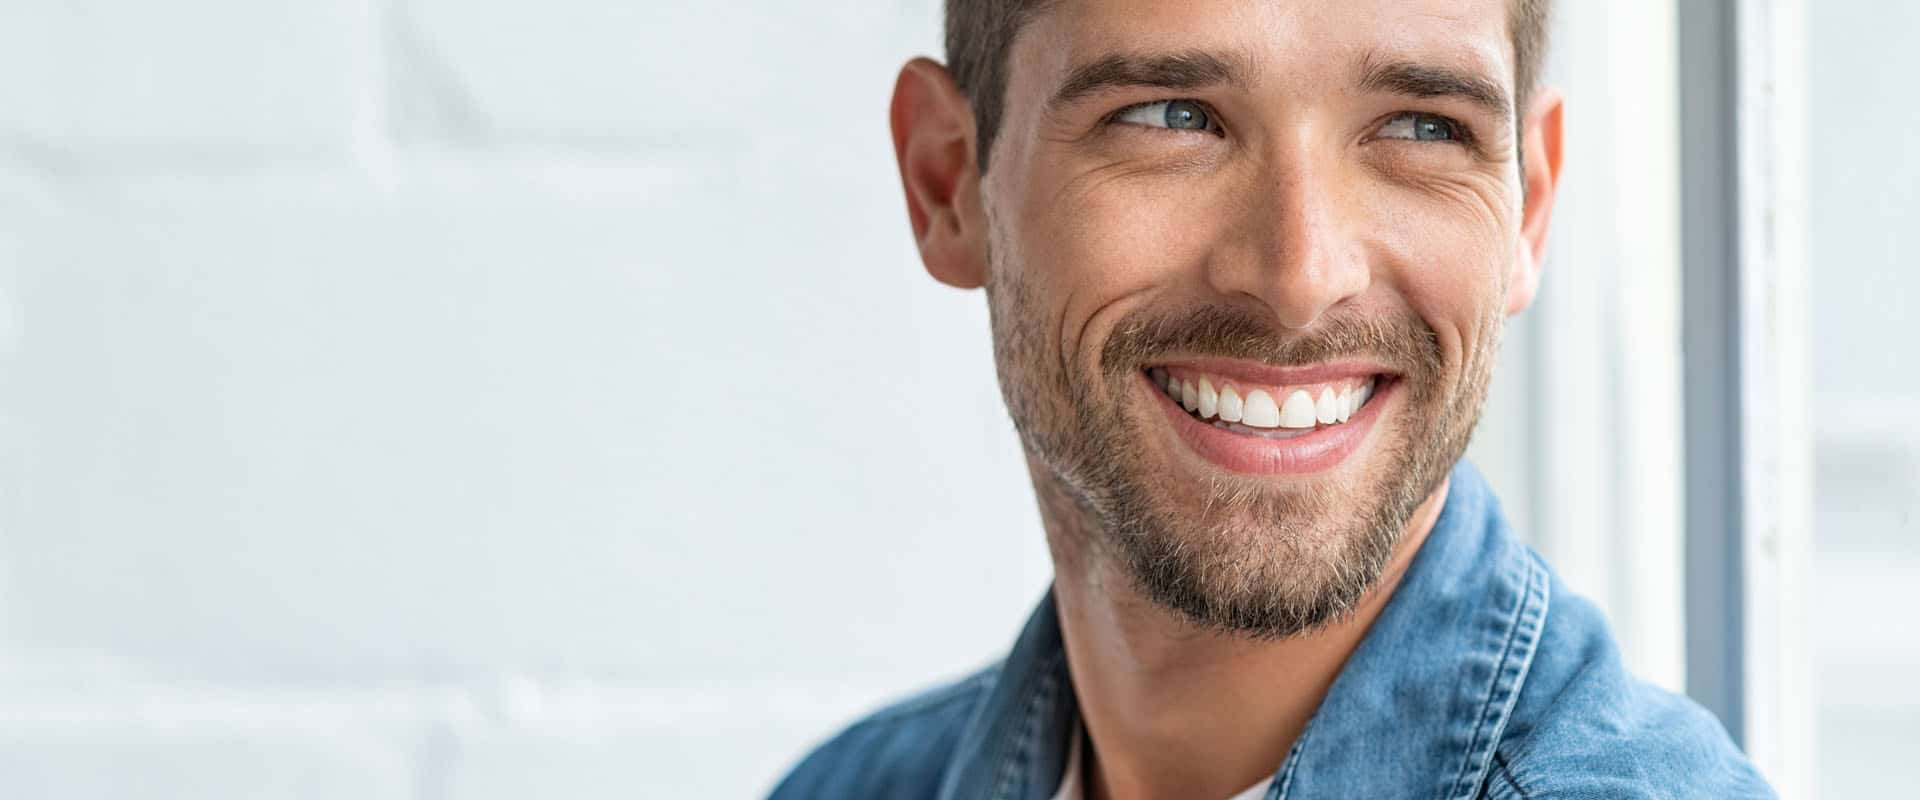 Protecting Your Teeth with Dental Sealants